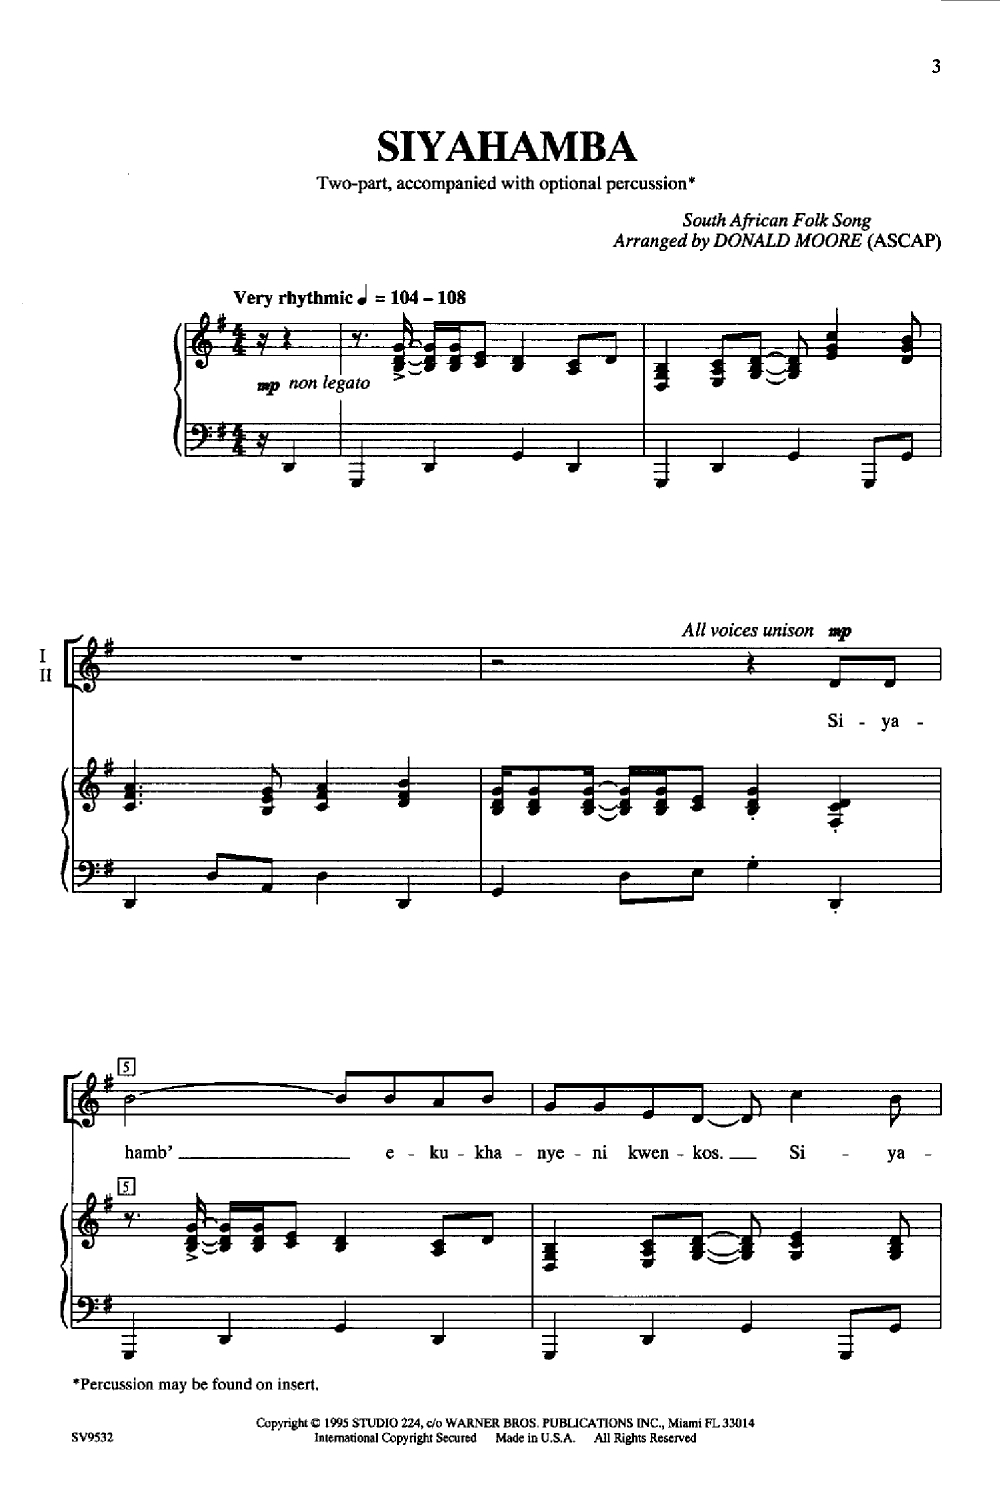 Siyahamba (Two-Part ) Arr. Donald Moore| J.w. Pepper Sheet Music - Airplanes Piano Sheet Music Free Printable